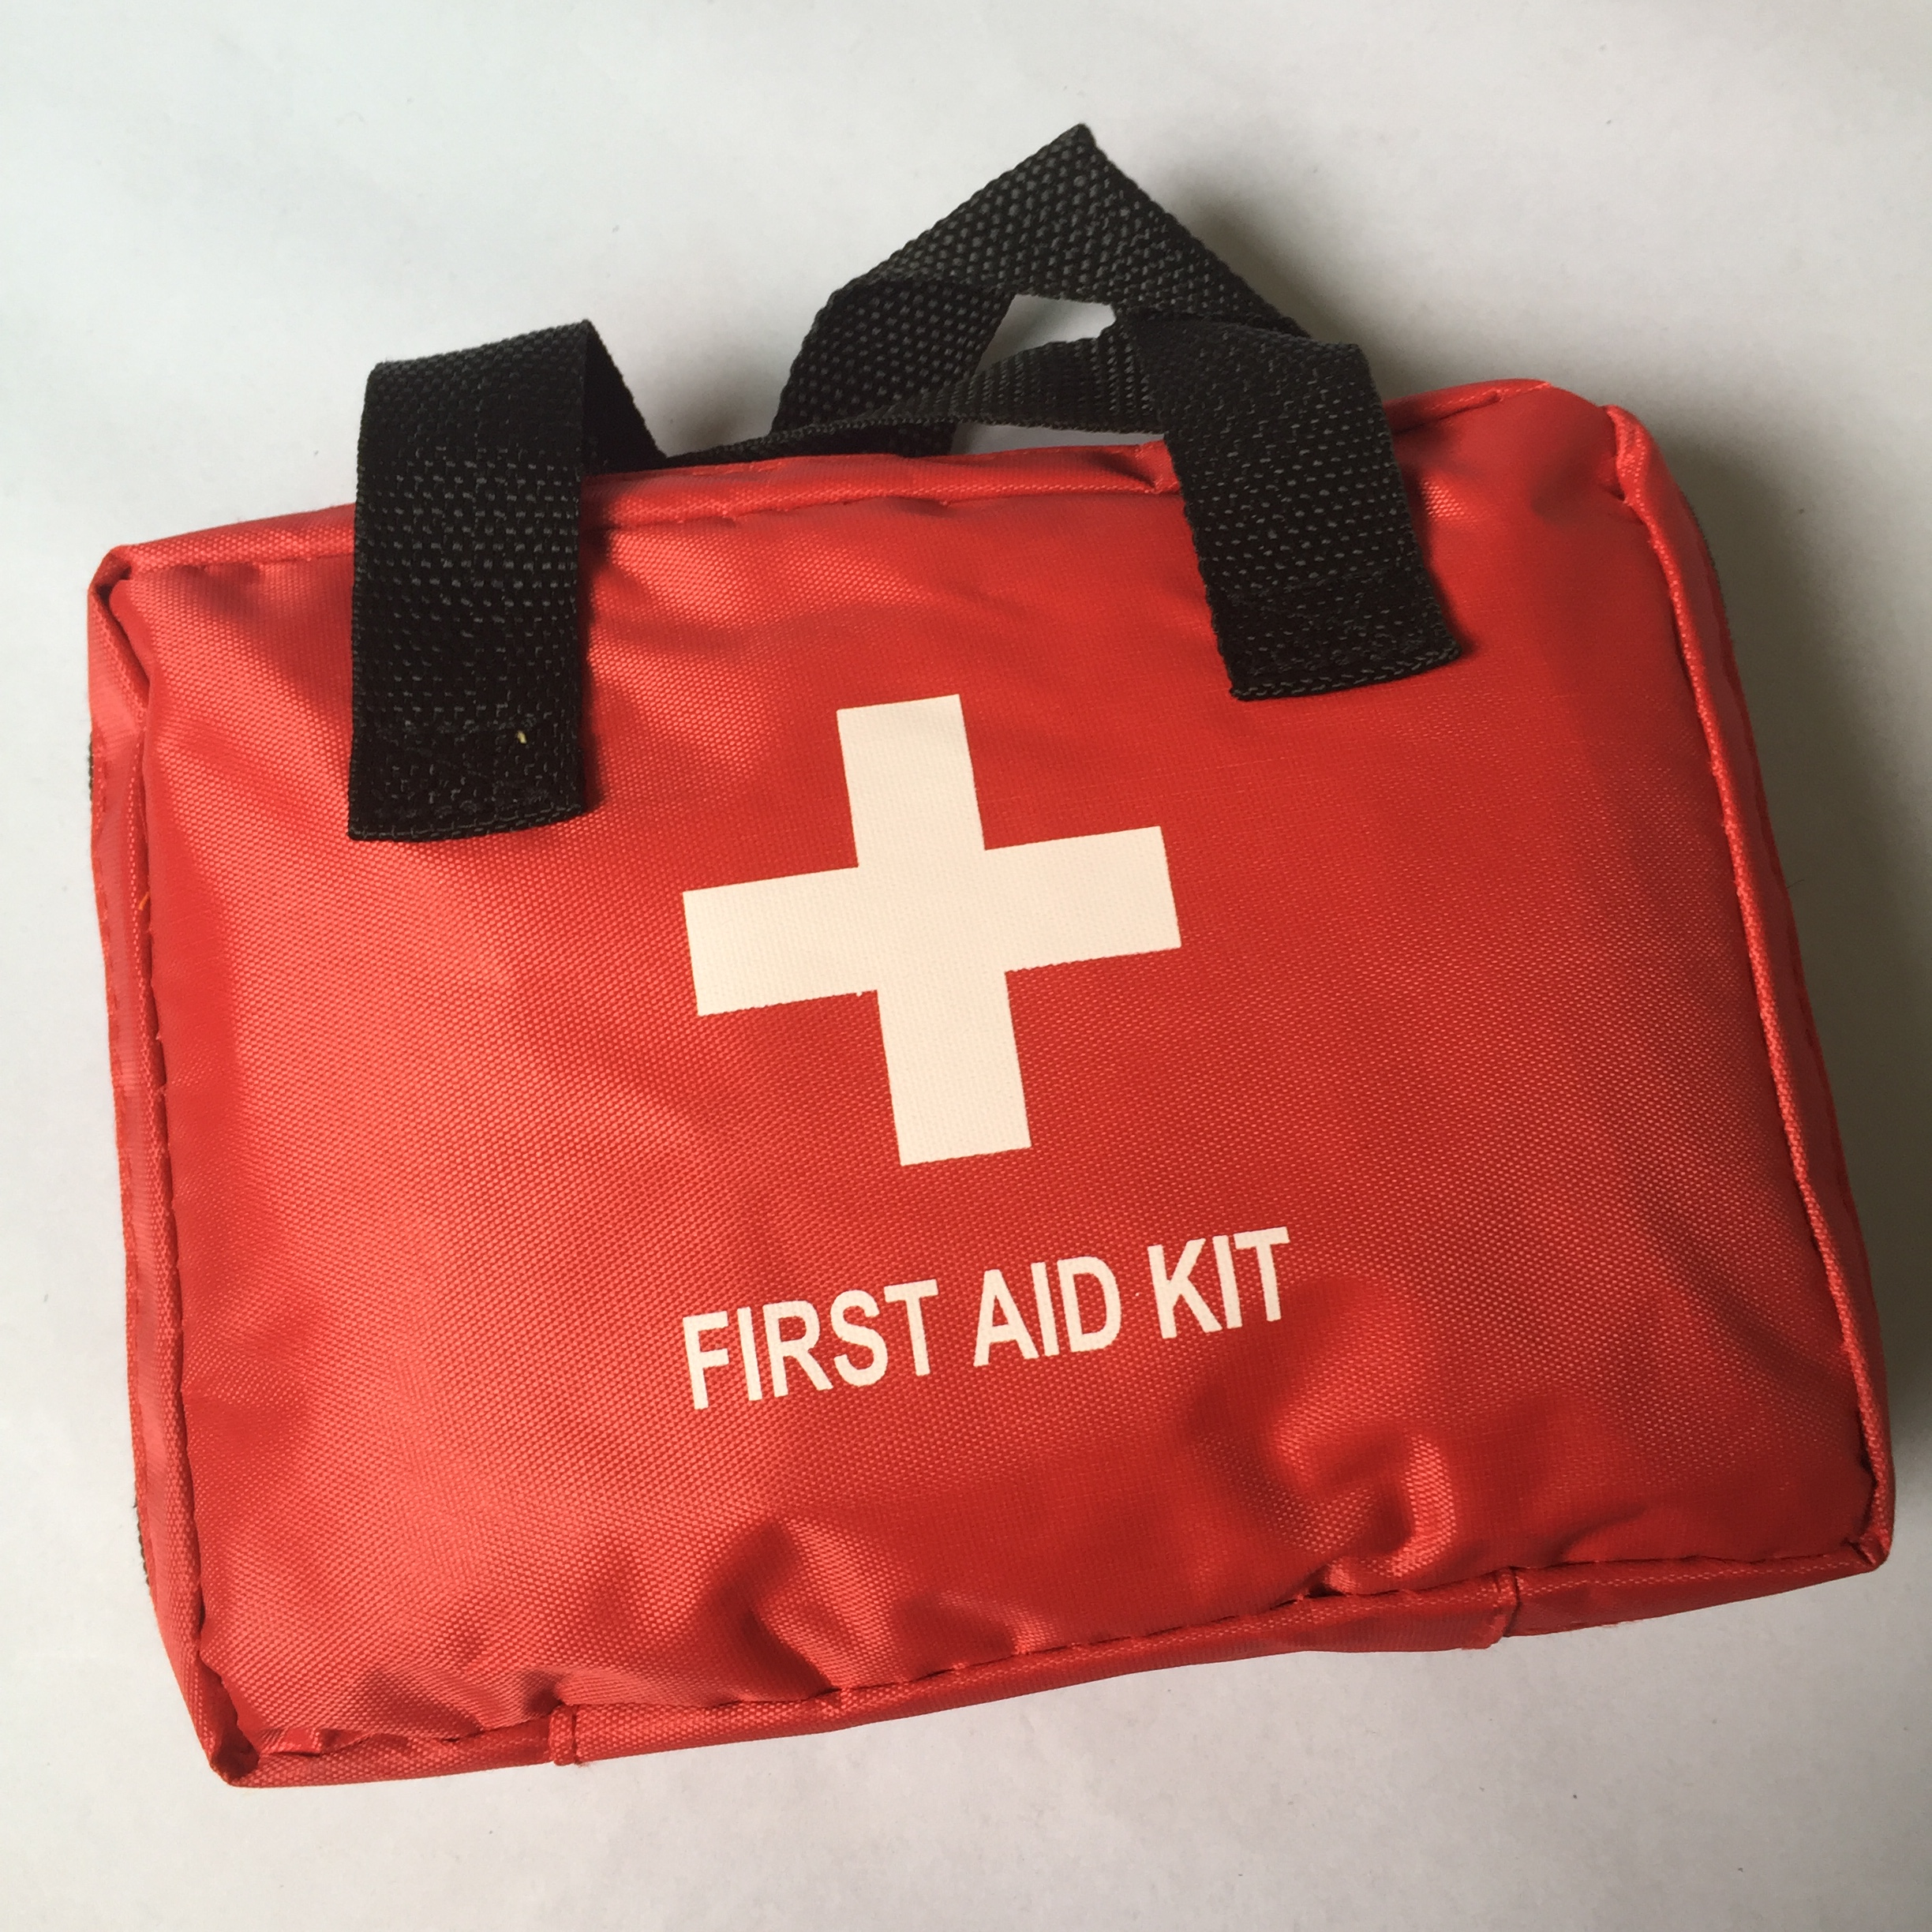 Family outdoor vehicle mounted first aid kit medical kit family vehicle mounted emergency medical kit including first aid supplies